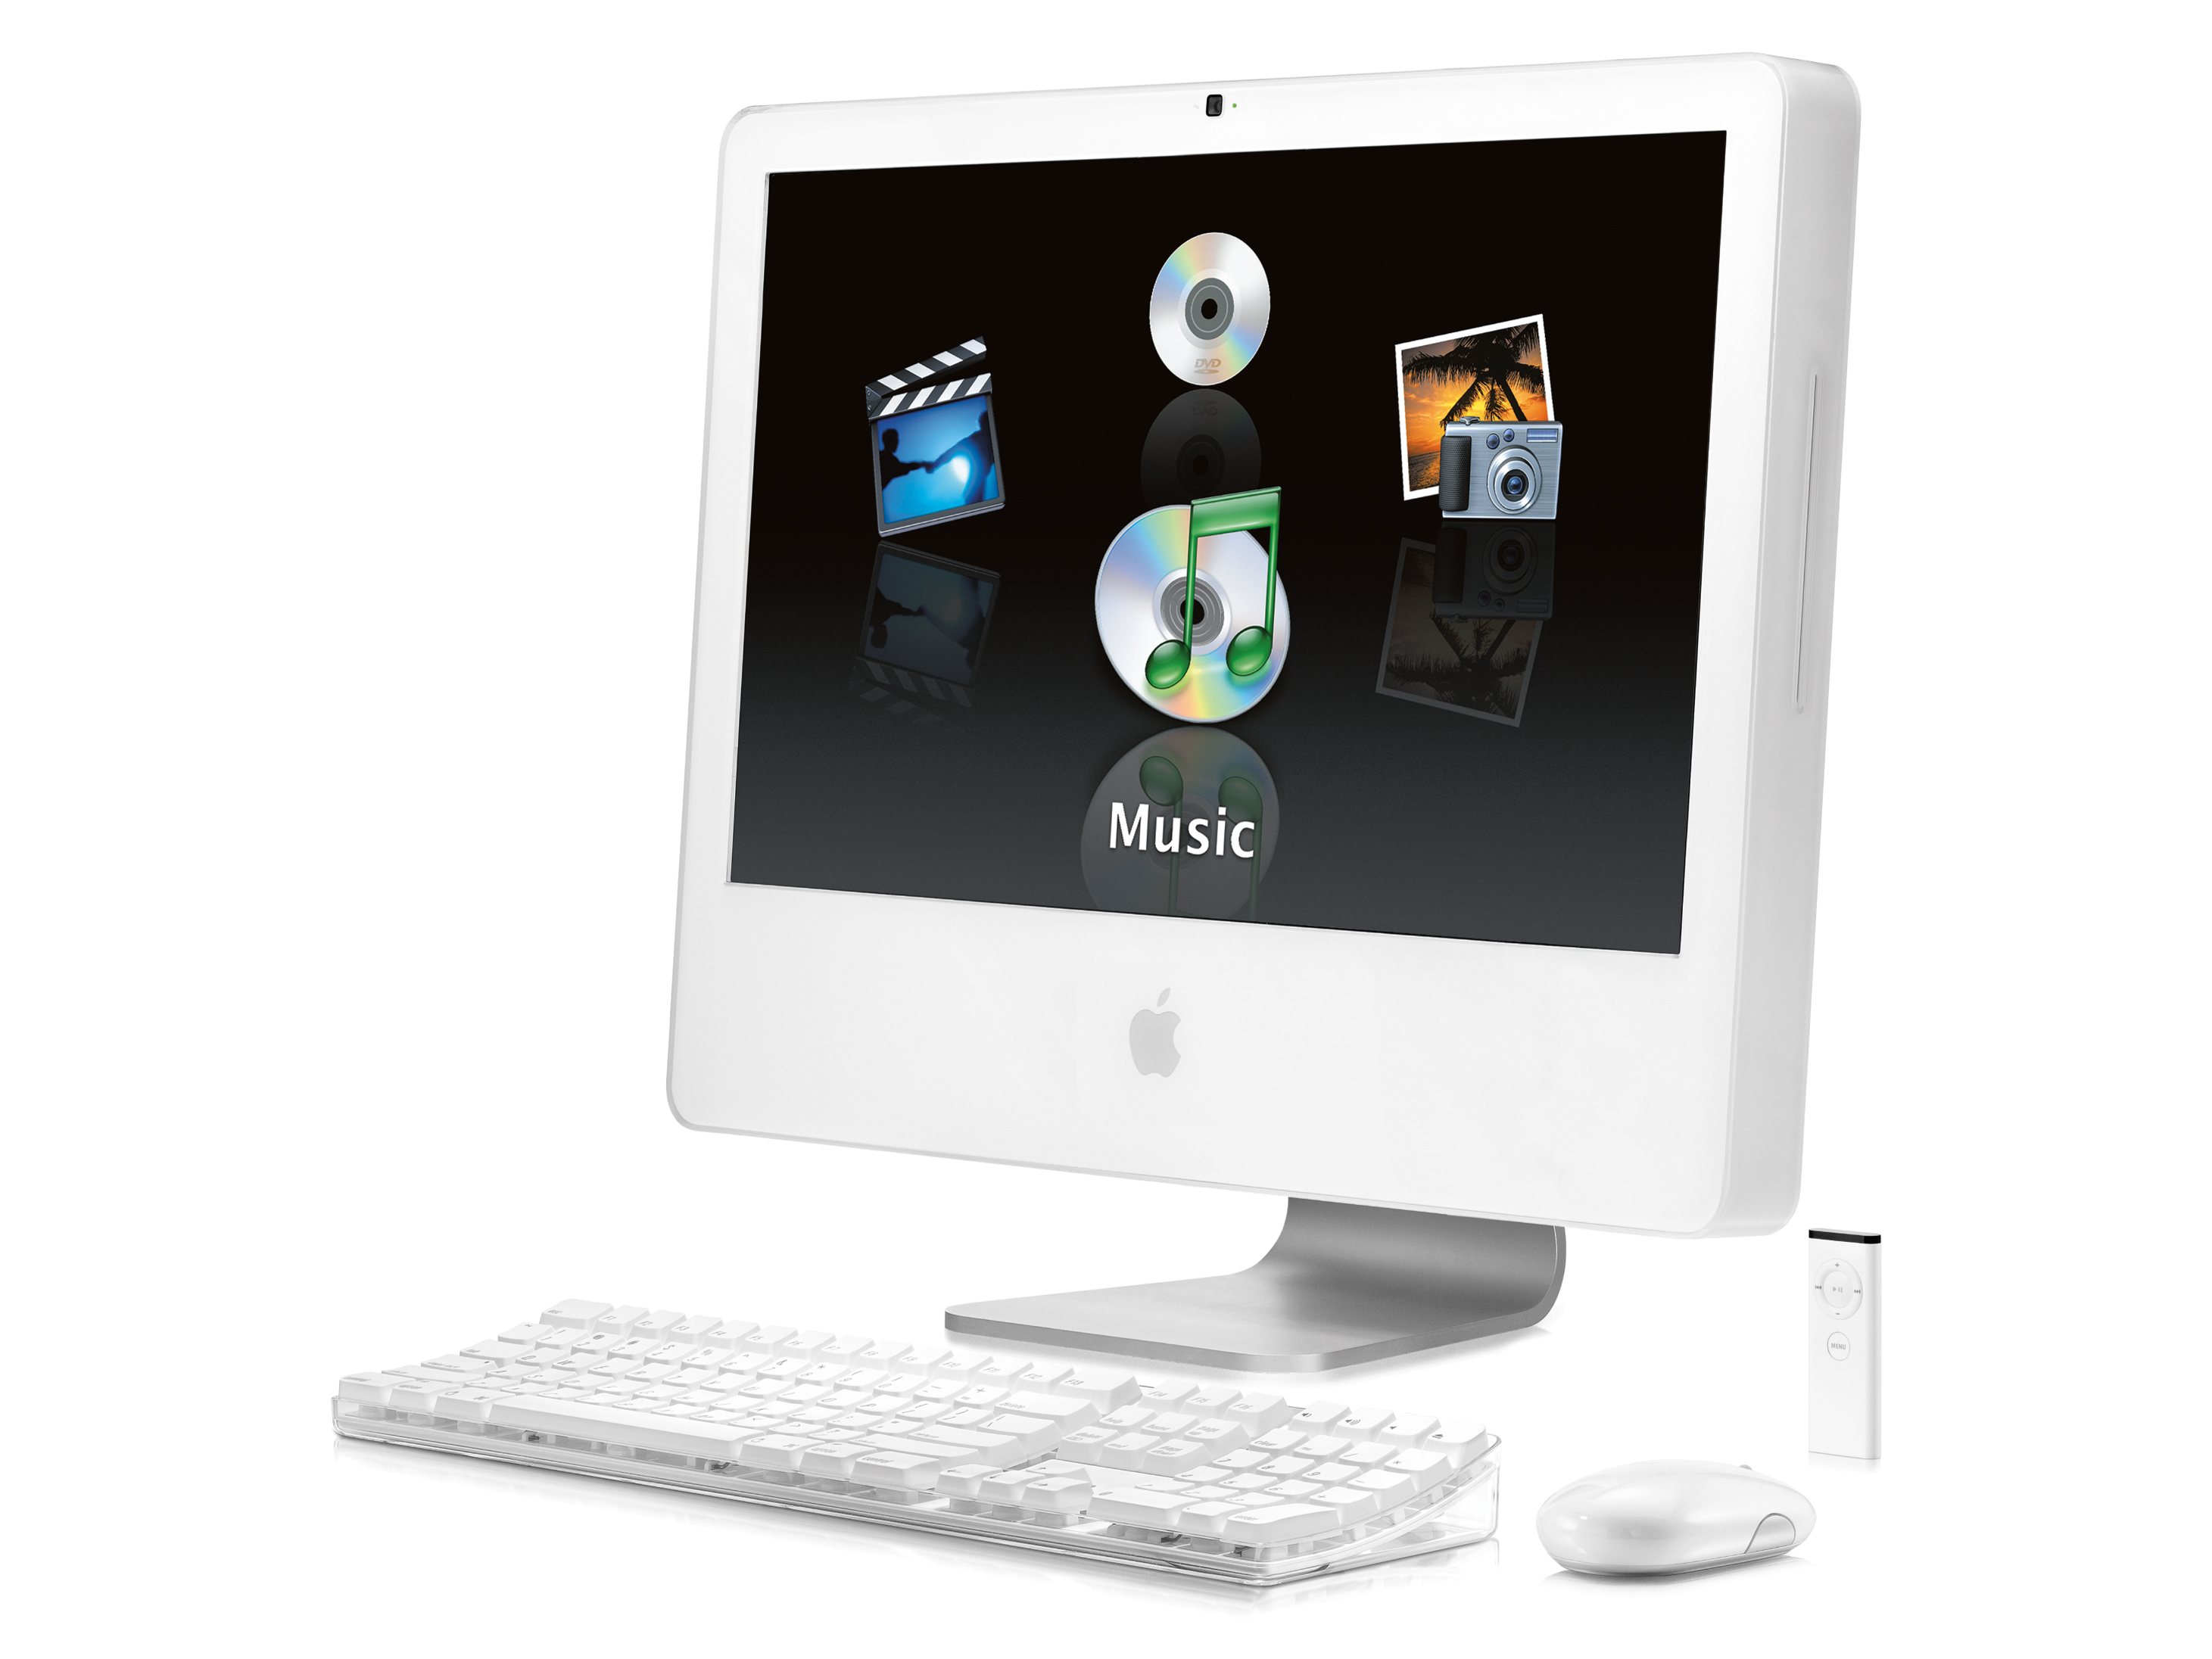 the new imac 24